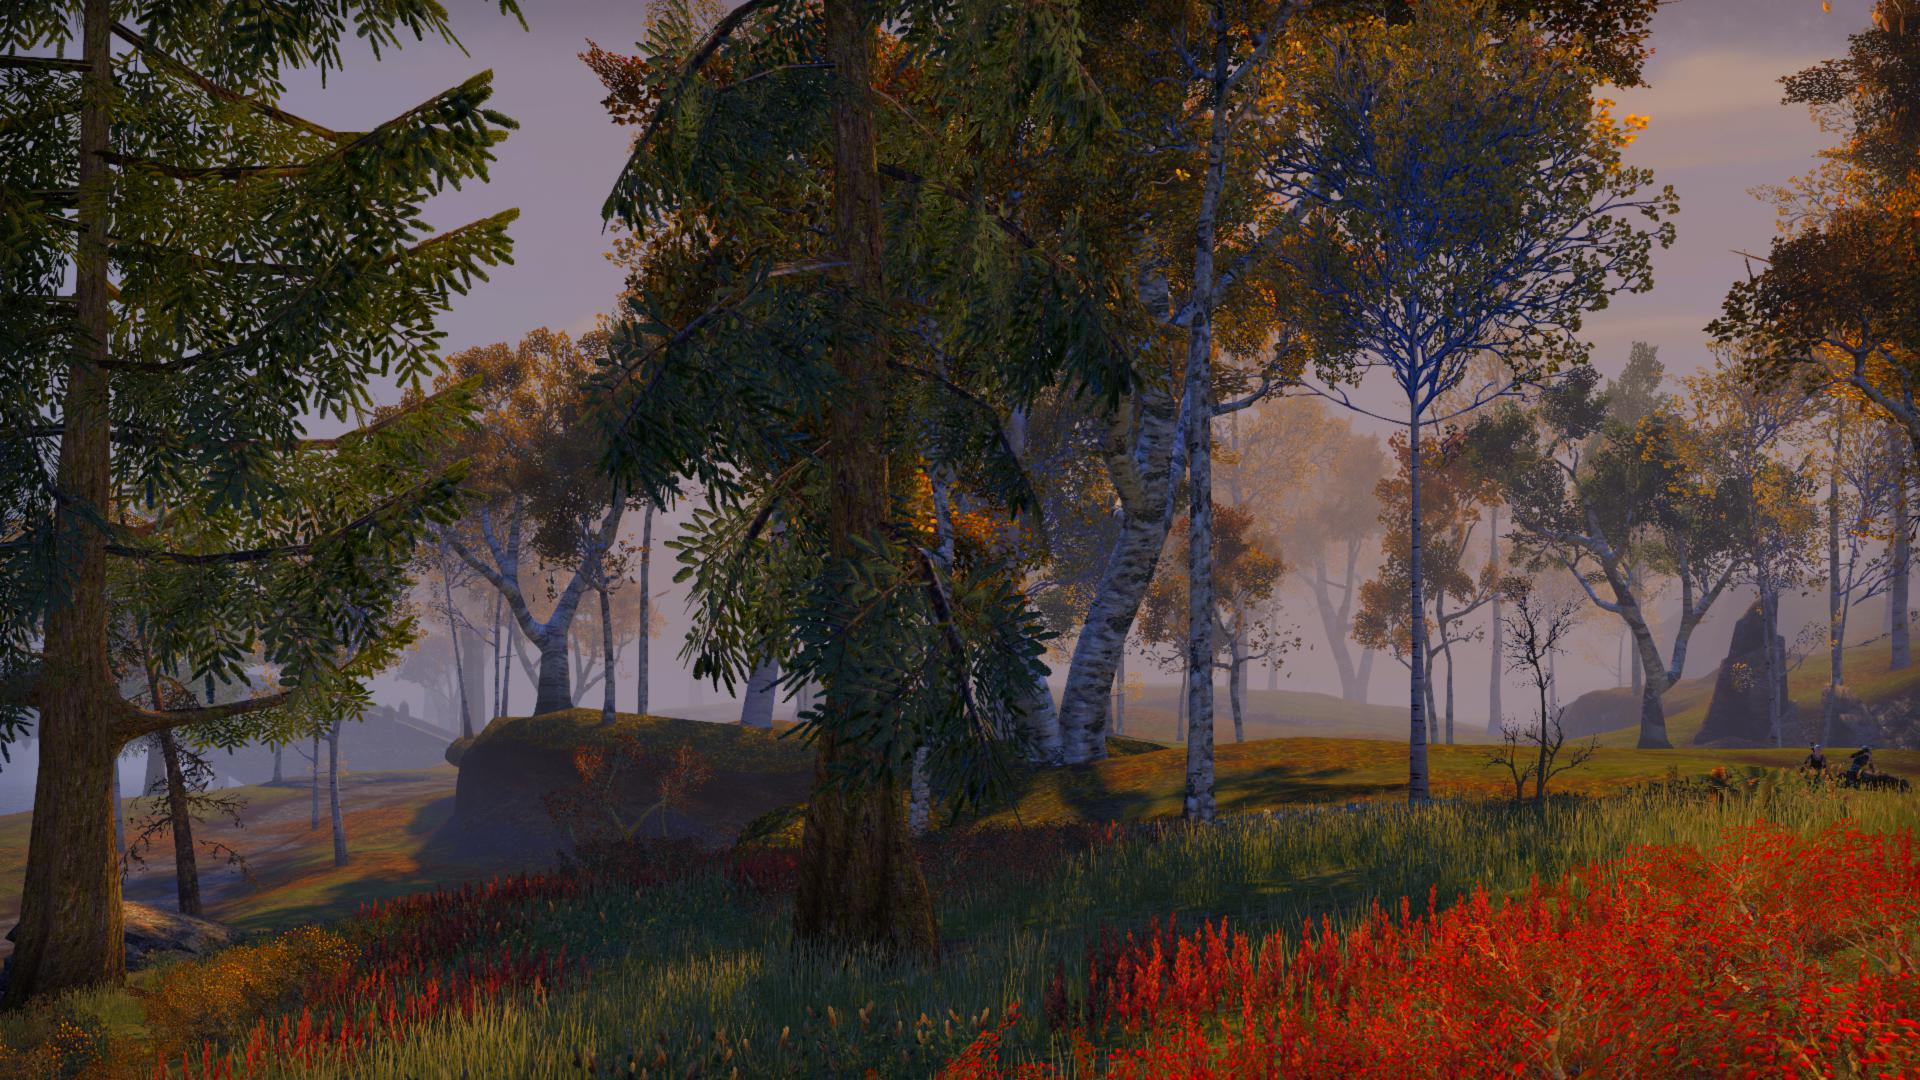 It's a videogame forest, red plants in the foreground, a sweep of green and a selection of autumnal shades make the trees almost, but not quite, akin to a painting.